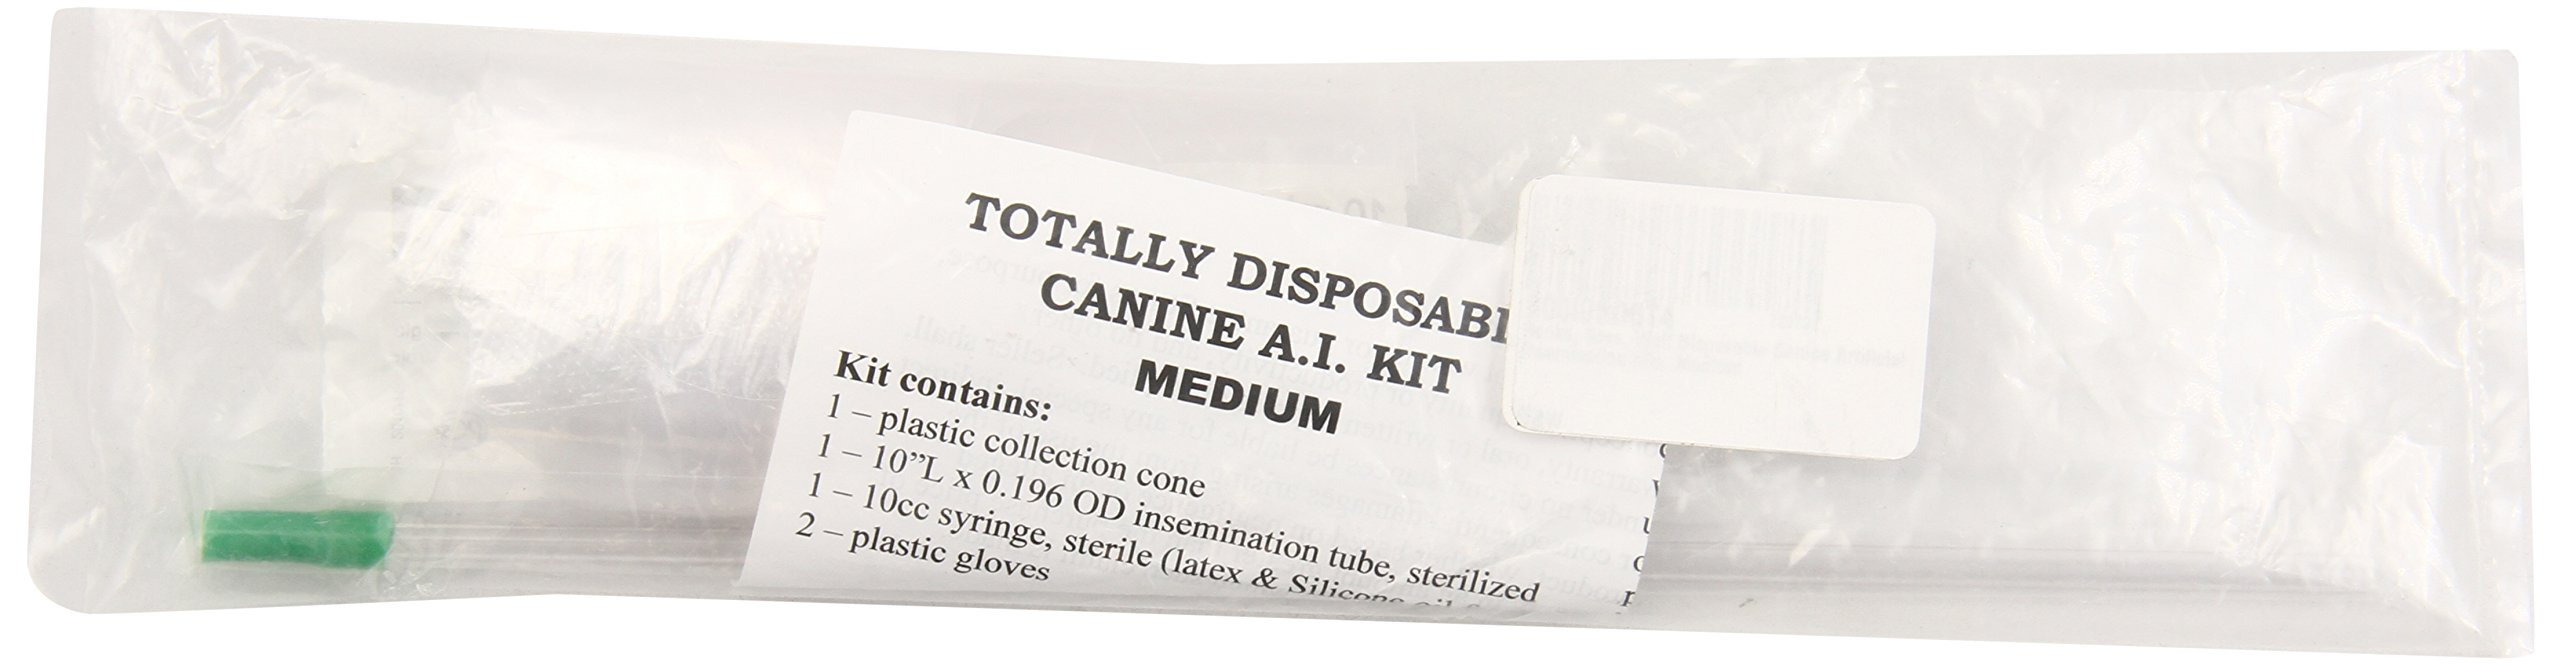 Henke, Sass, Wolf Disposable Canine Artificial Insemination Kits, Medium